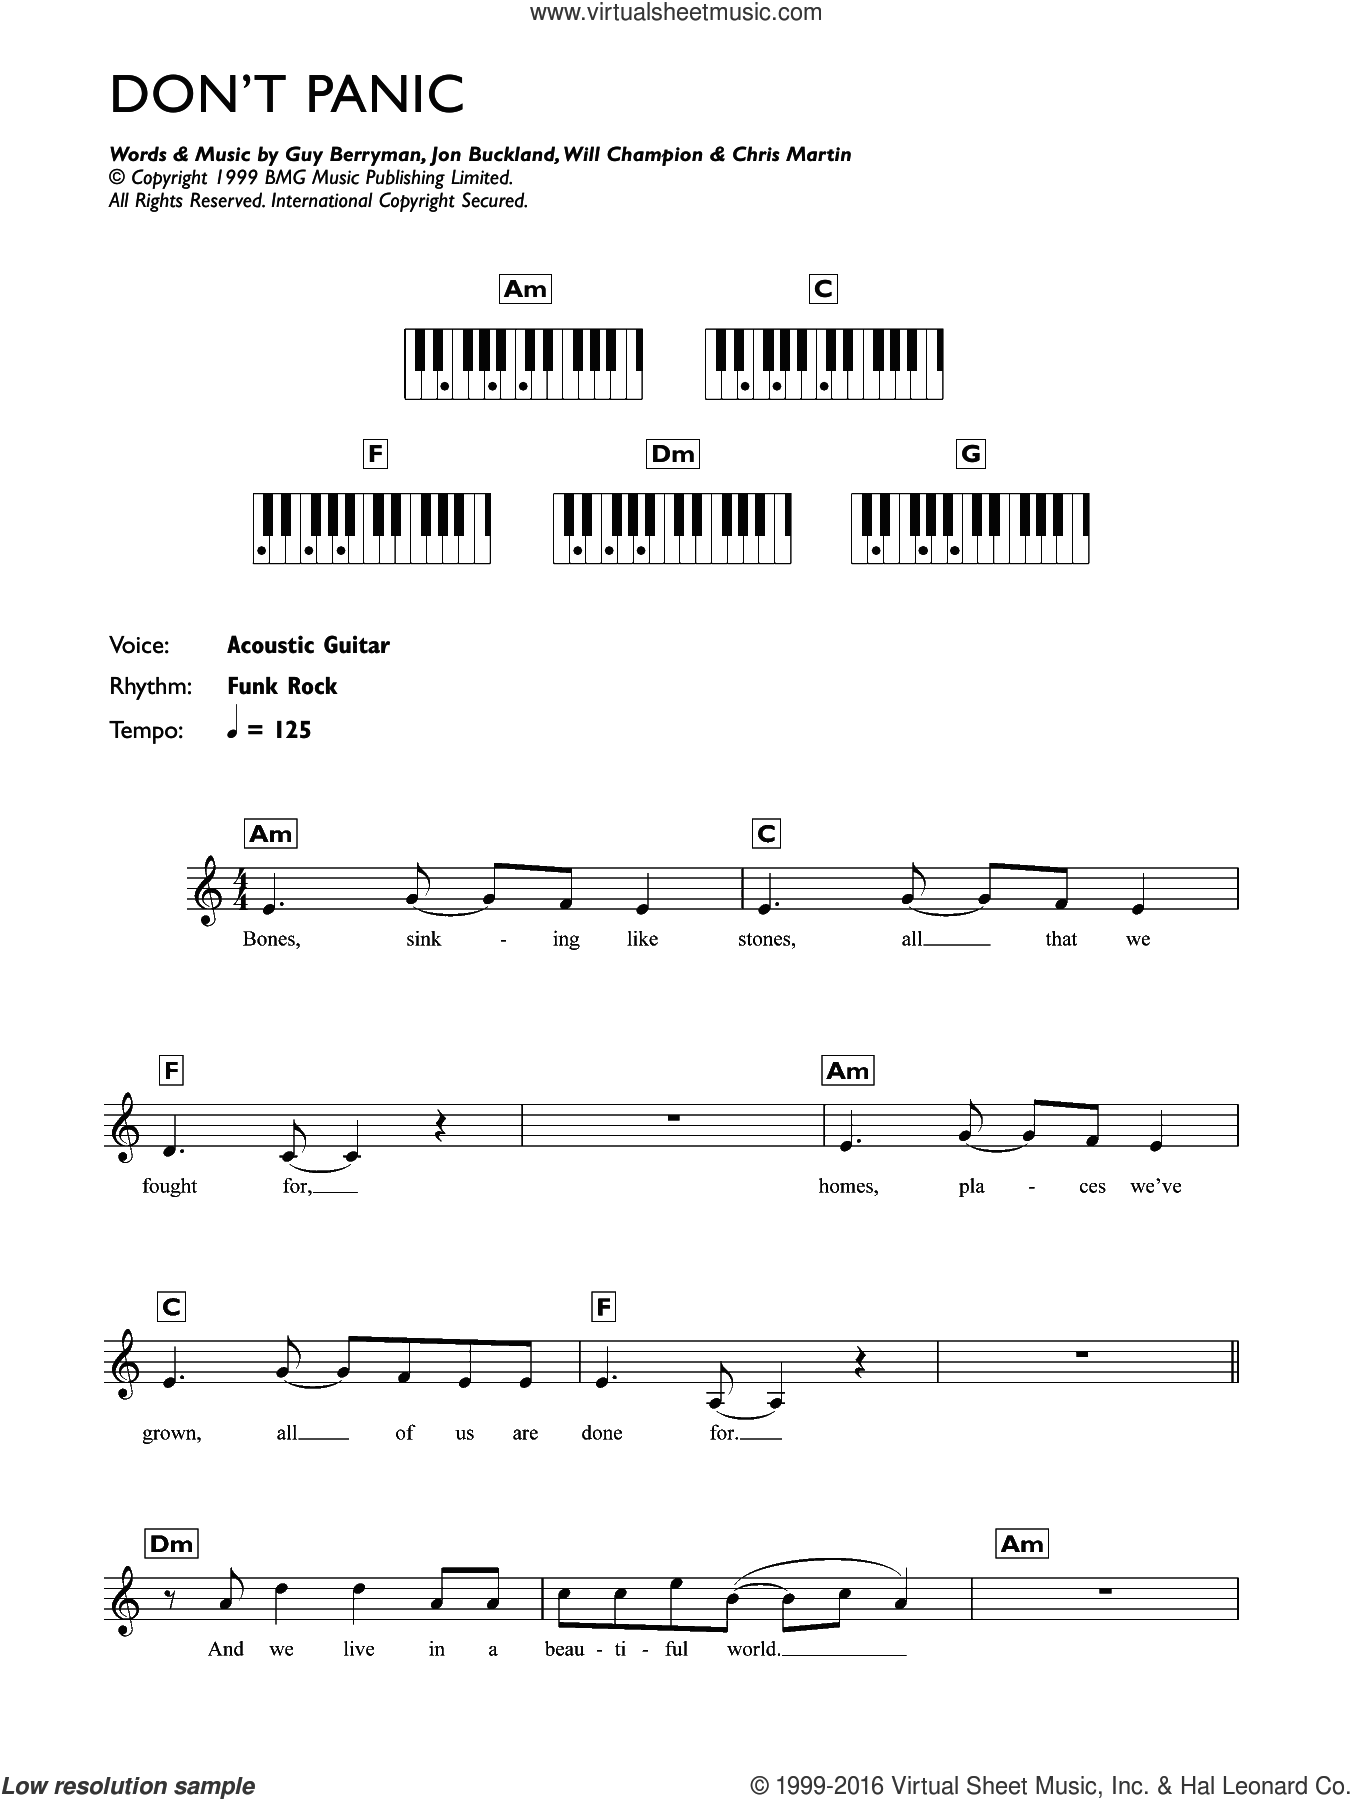 Don't Panic sheet music for piano solo (chords, lyrics, melody) by Coldplay, Chris Martin, Guy Berryman, Jon Buckland and Will Champion, intermediate piano (chords, lyrics, melody)